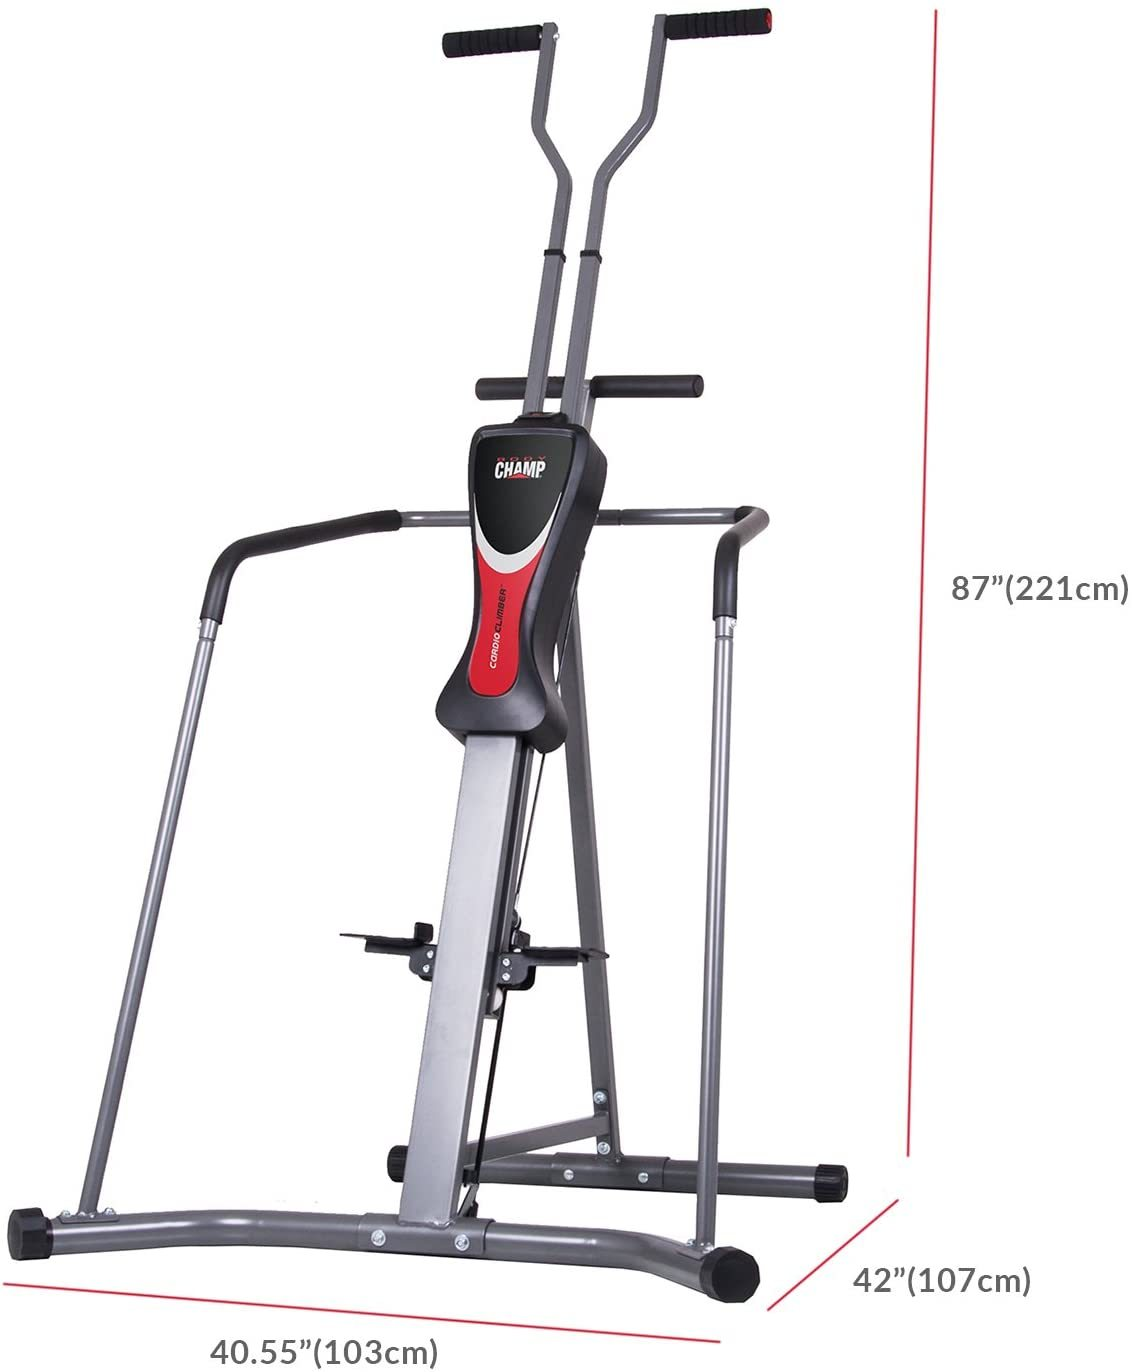 Leisa Hart Cardio Vertical Stepper Climber / Includes Assembly Video, Meal Plan Guide, Workout Video access BCR890,Gray